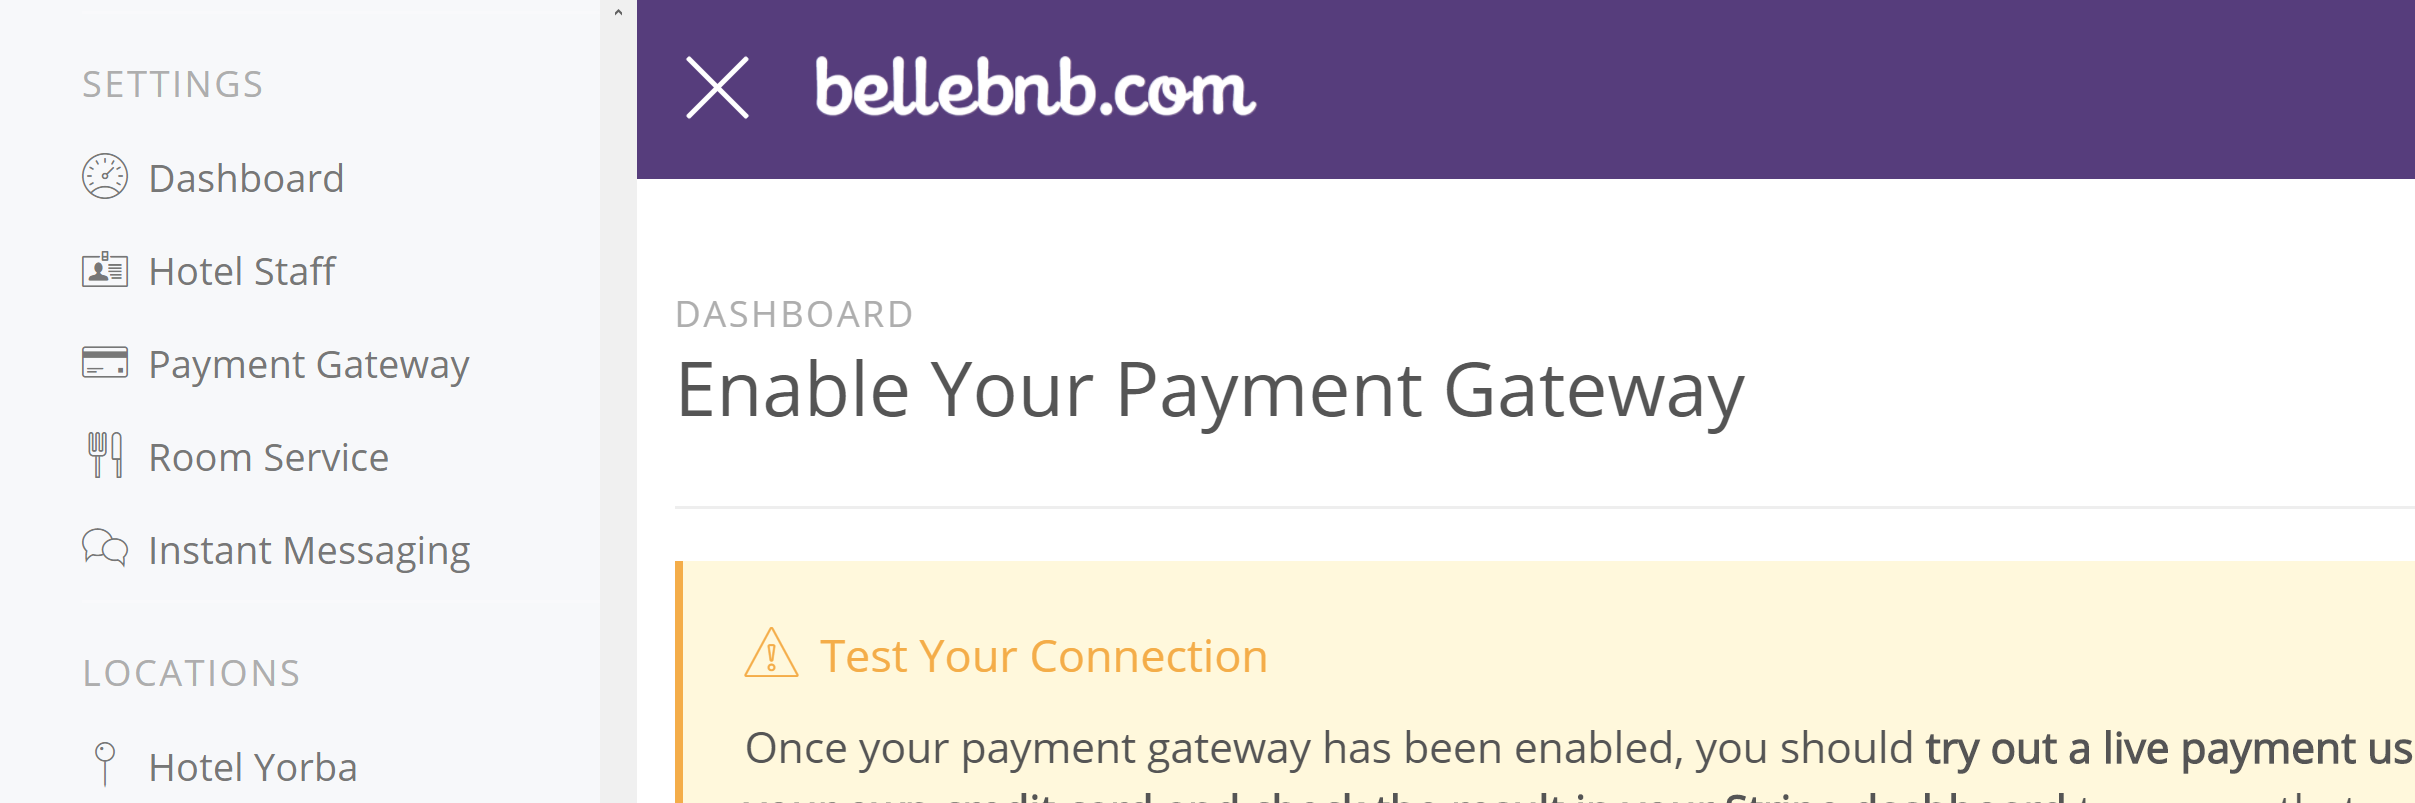 Payment Gateways Part I: Bellebnb Concepts You can connect your Payment Gateway to process live credit card payments directly from your Front Desk manager. Before you do this, you should be familiar with a few definitions and concepts found in this blog post. Hotel Management Software in the Cloud